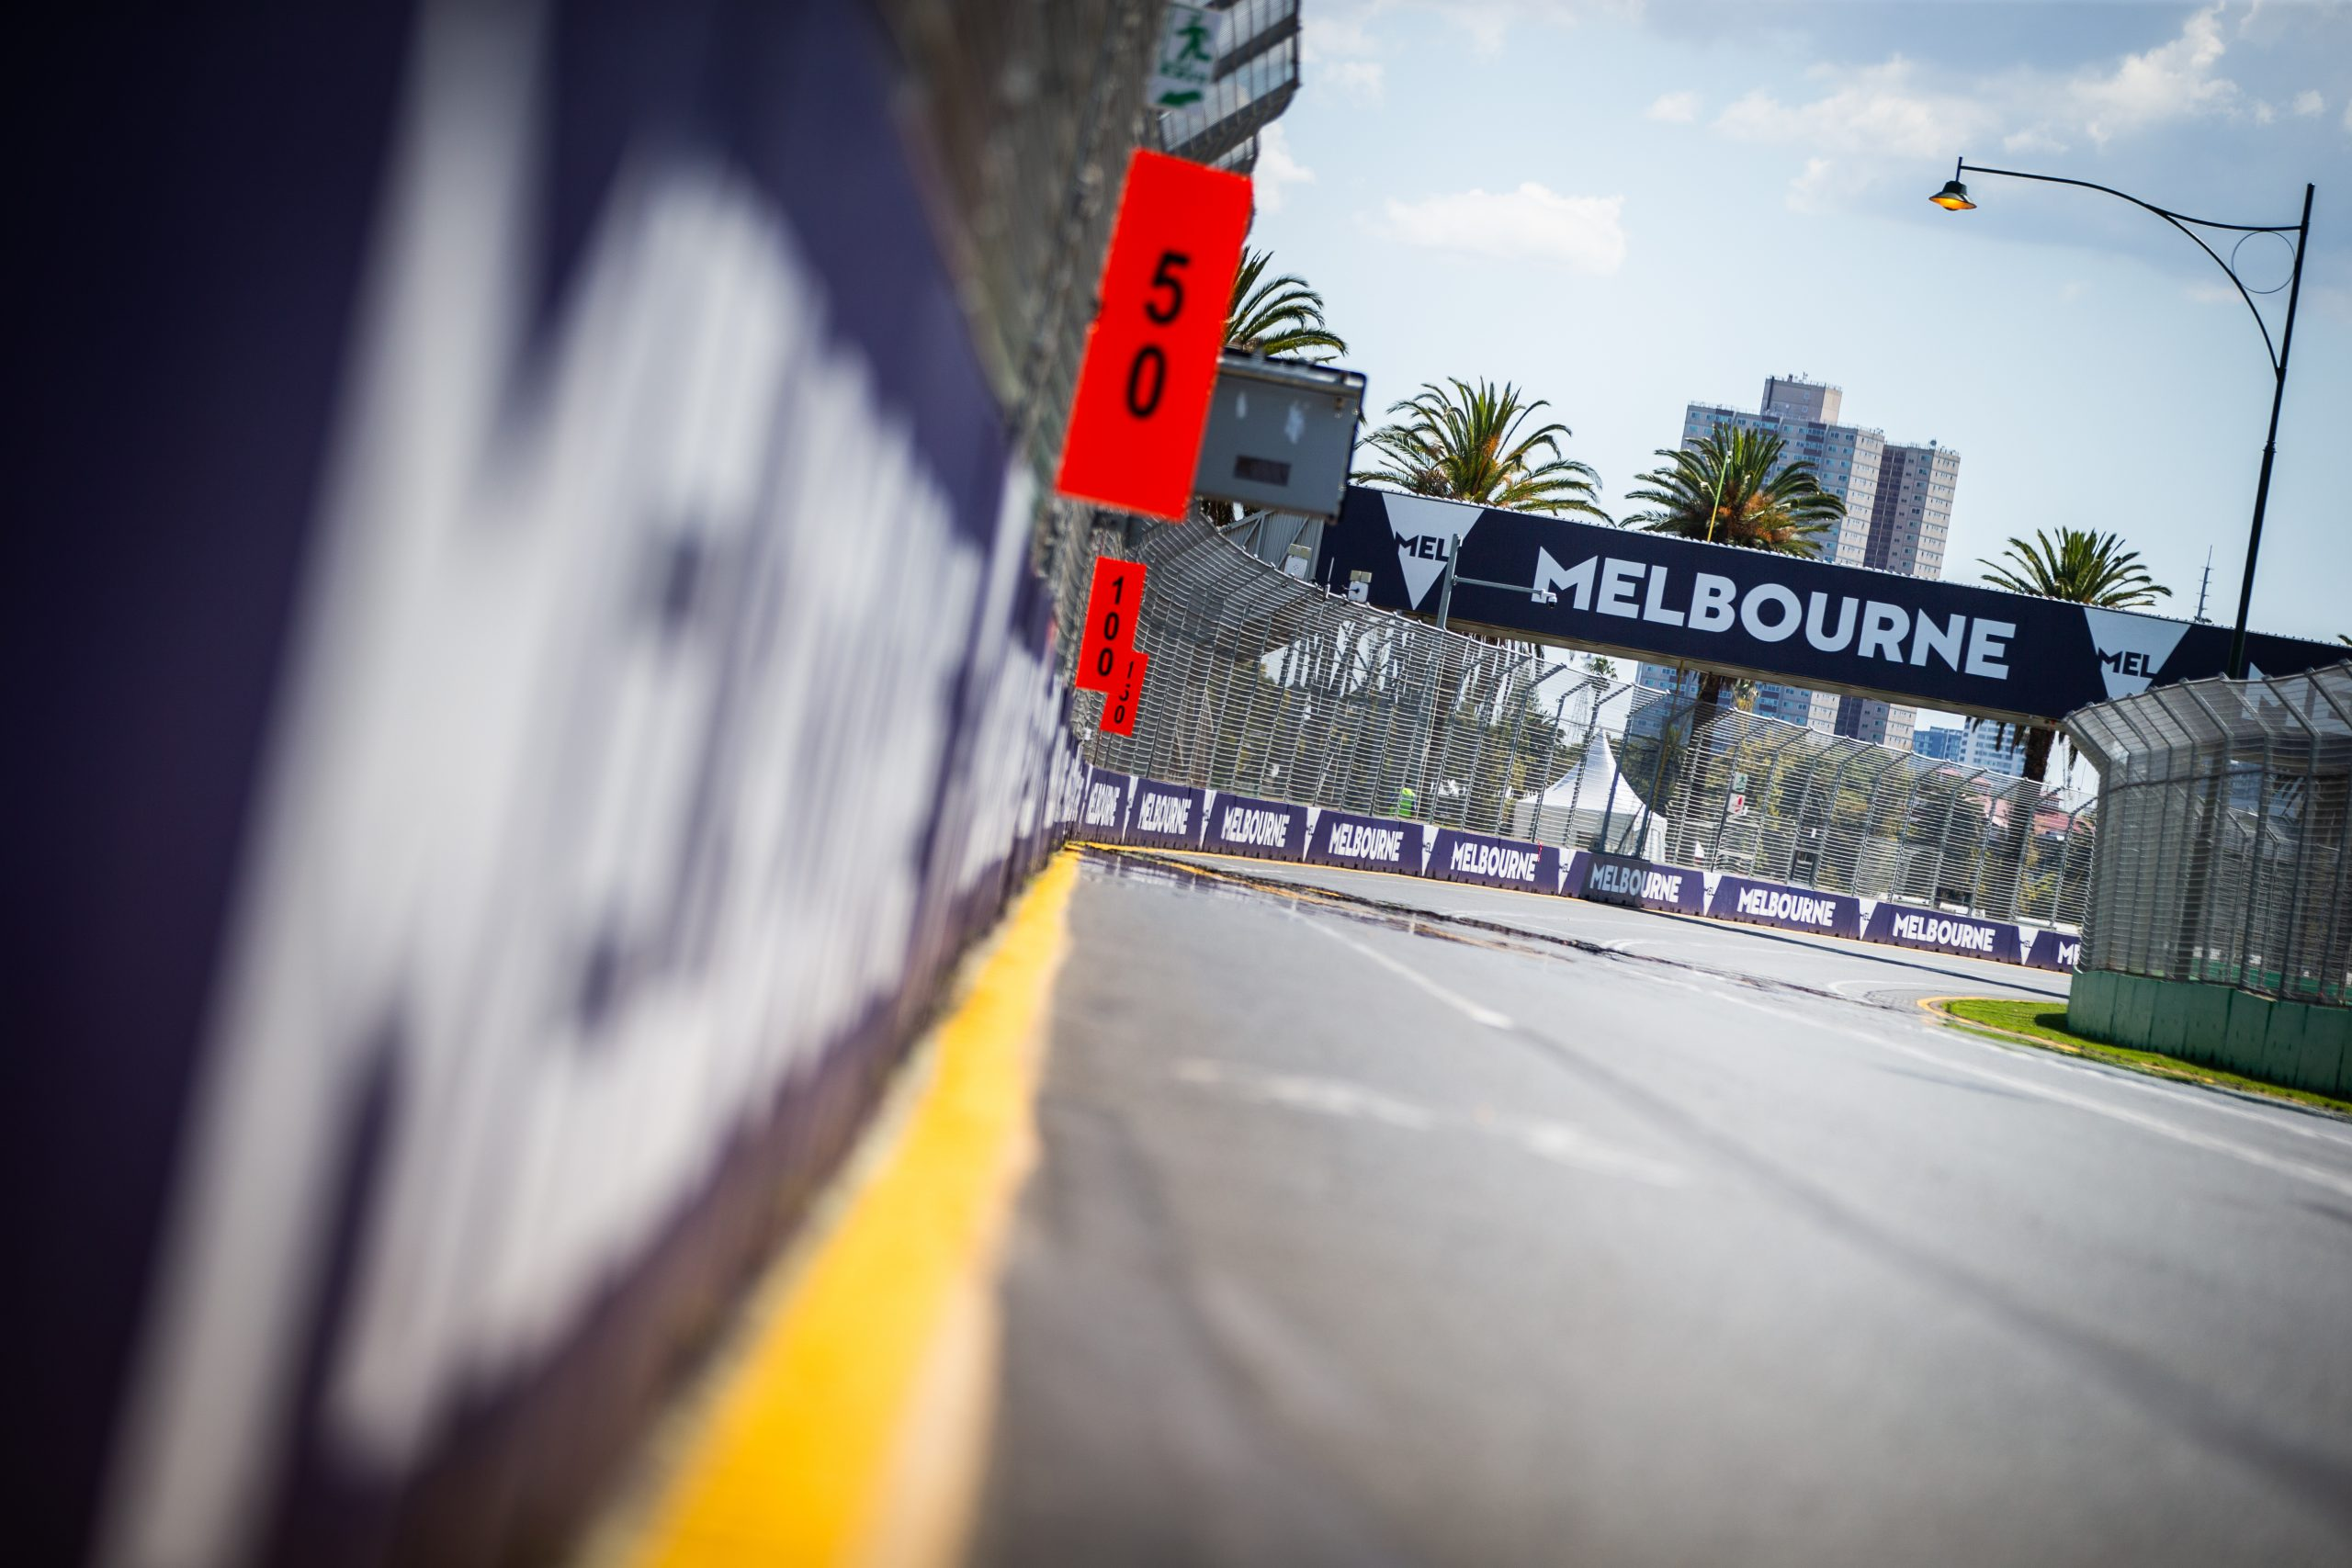 Doubts emerge over Melbourne's 2021 GP